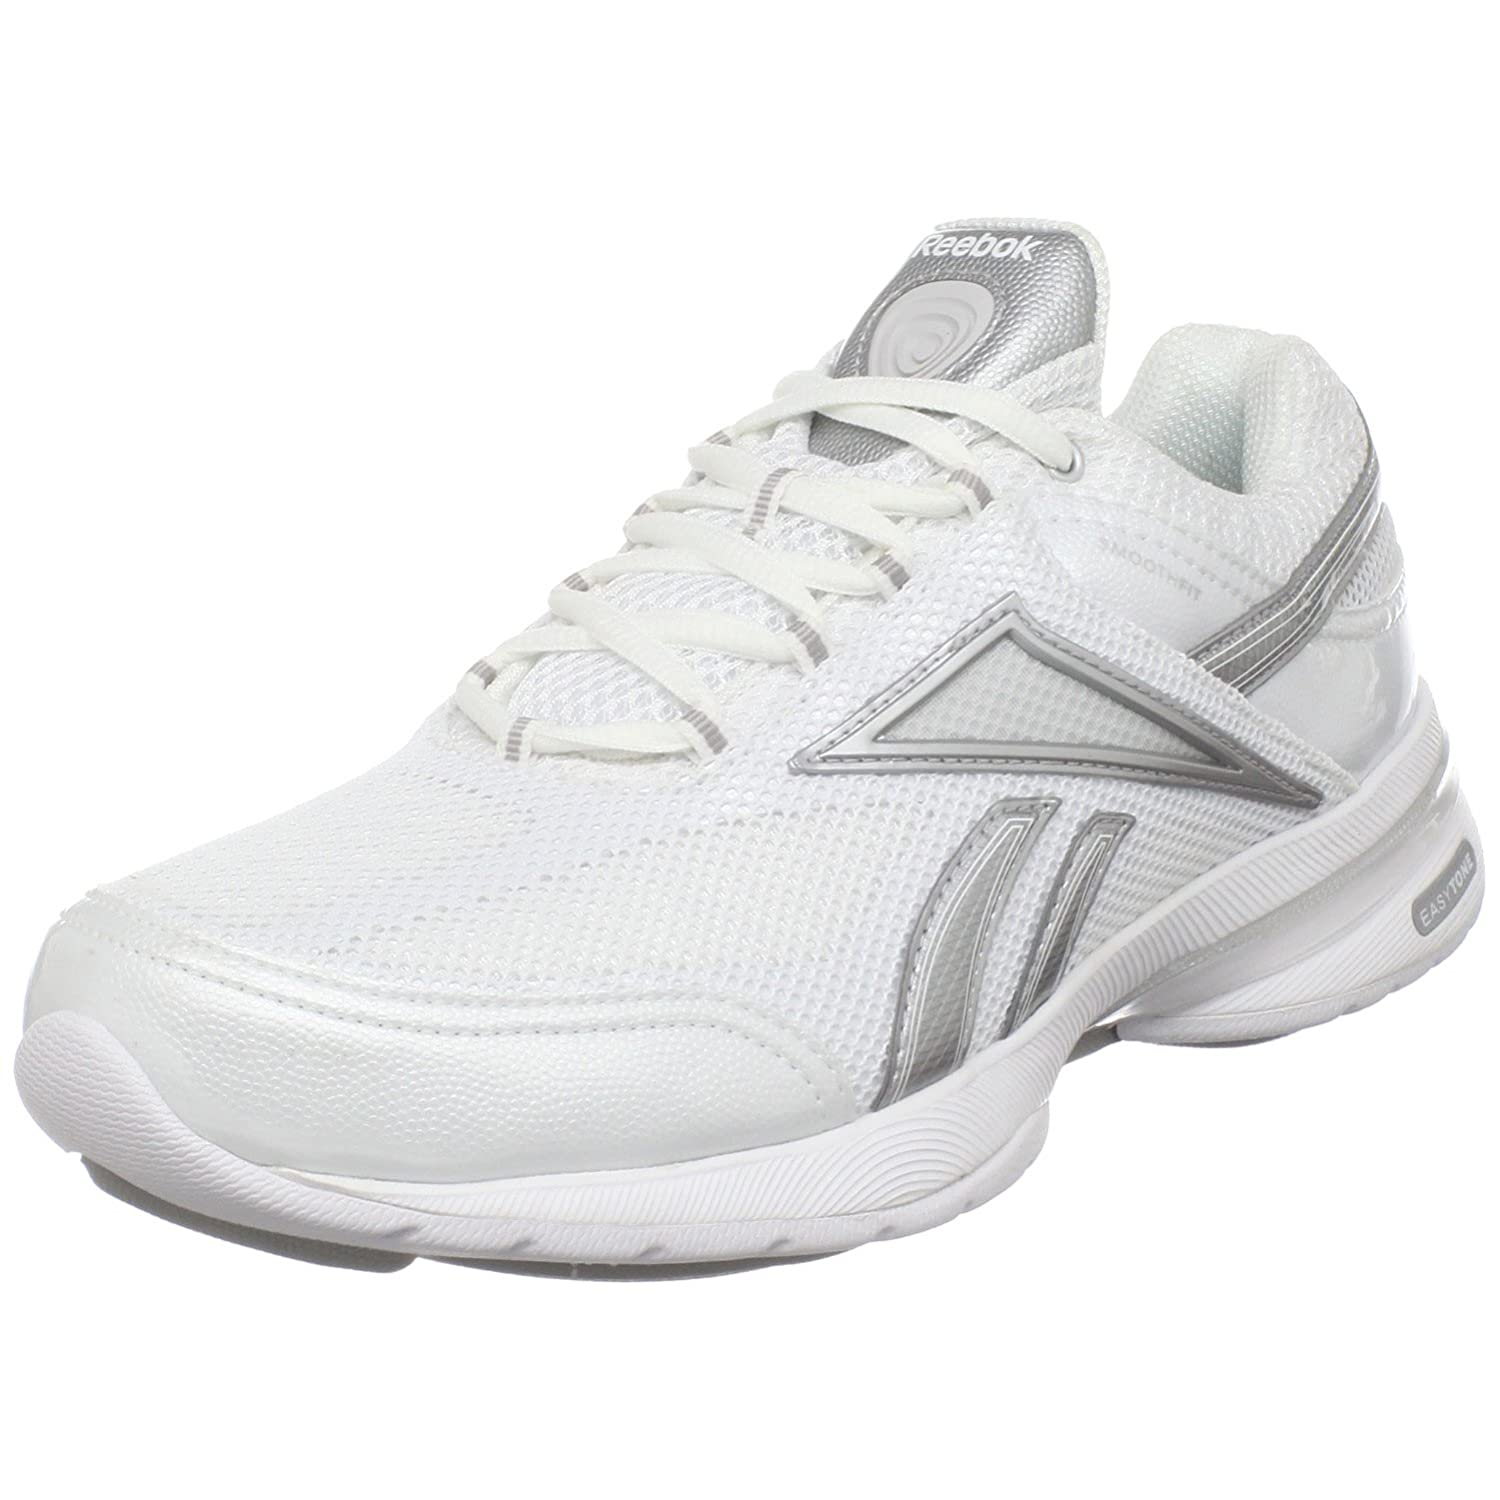 Reebok Women's Easytone Reenew Toner,White/Pure Silver/Steel/Light Grey,10 M US $27.53